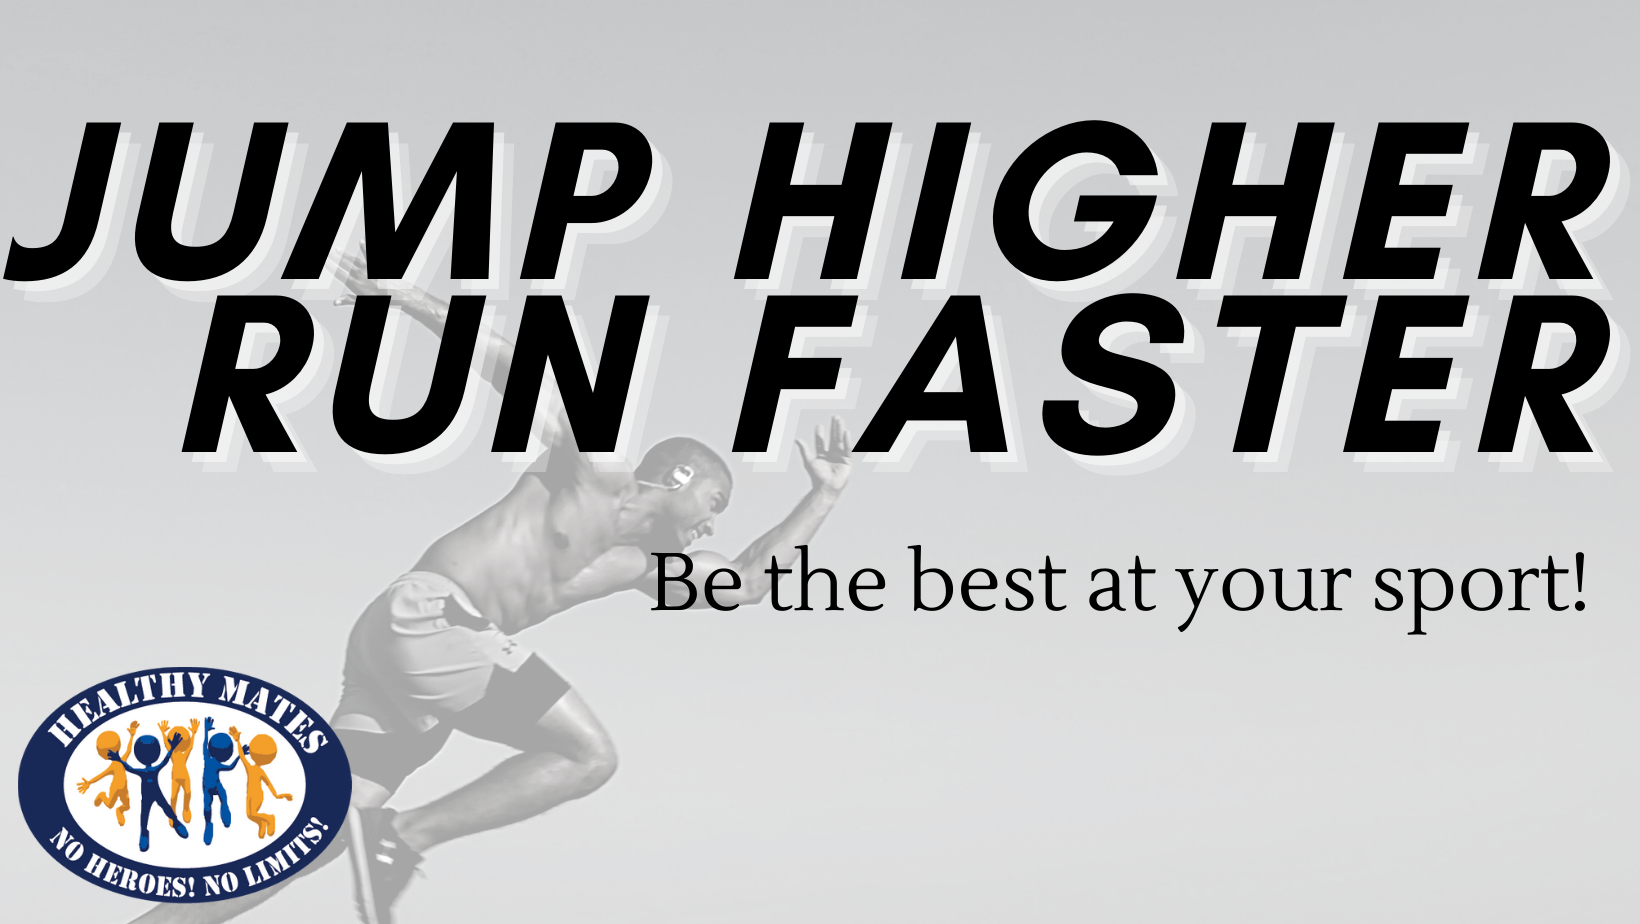 High performance training by Healthy Mates